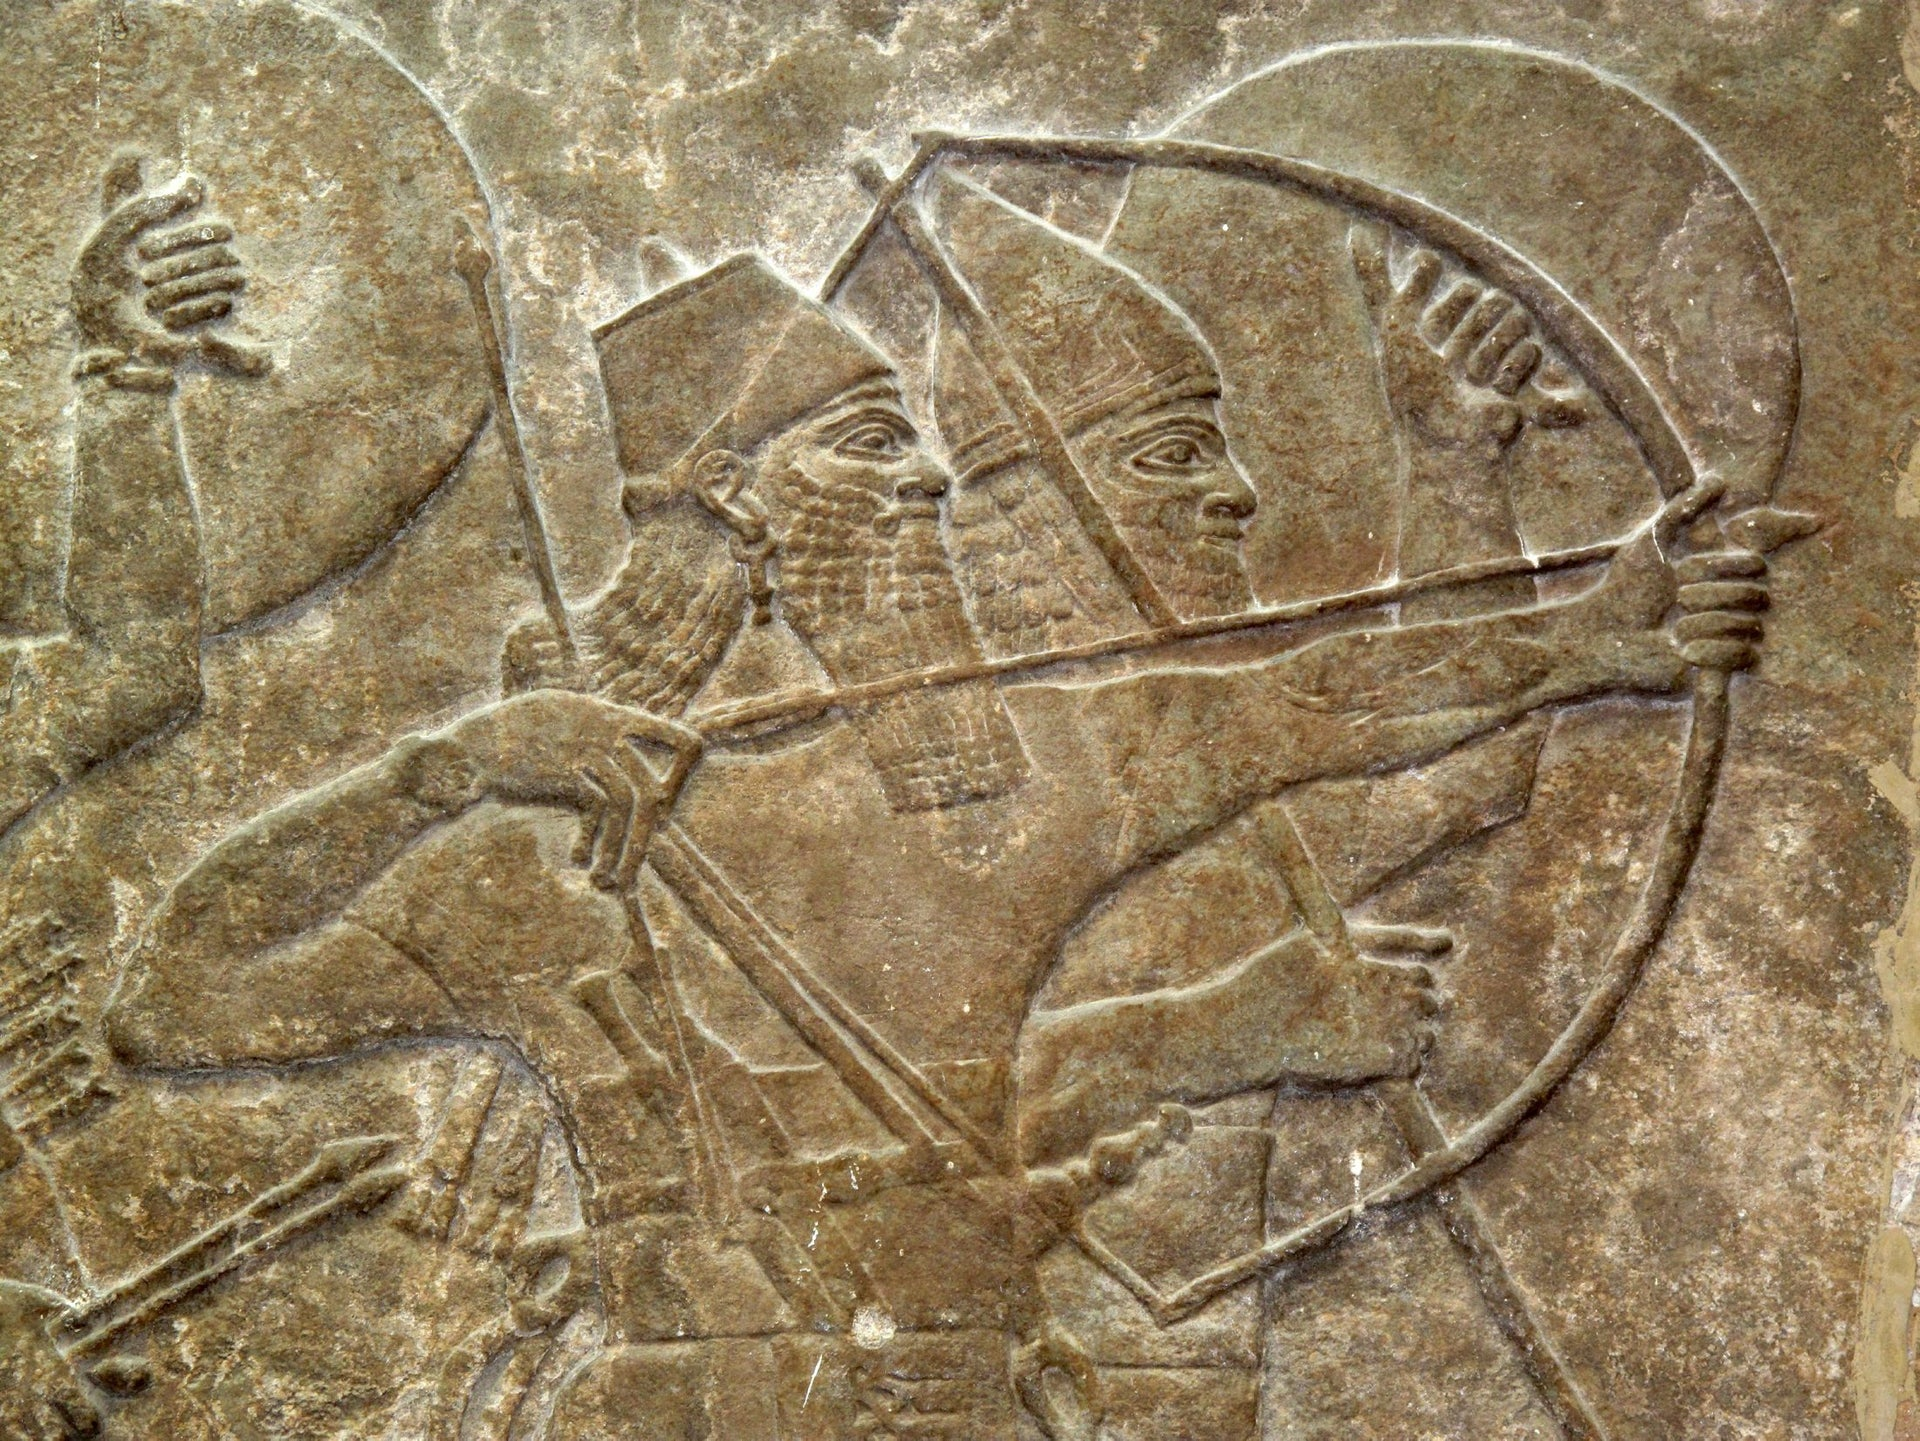 Assyrian Soldiers In Battle: Wall engraving